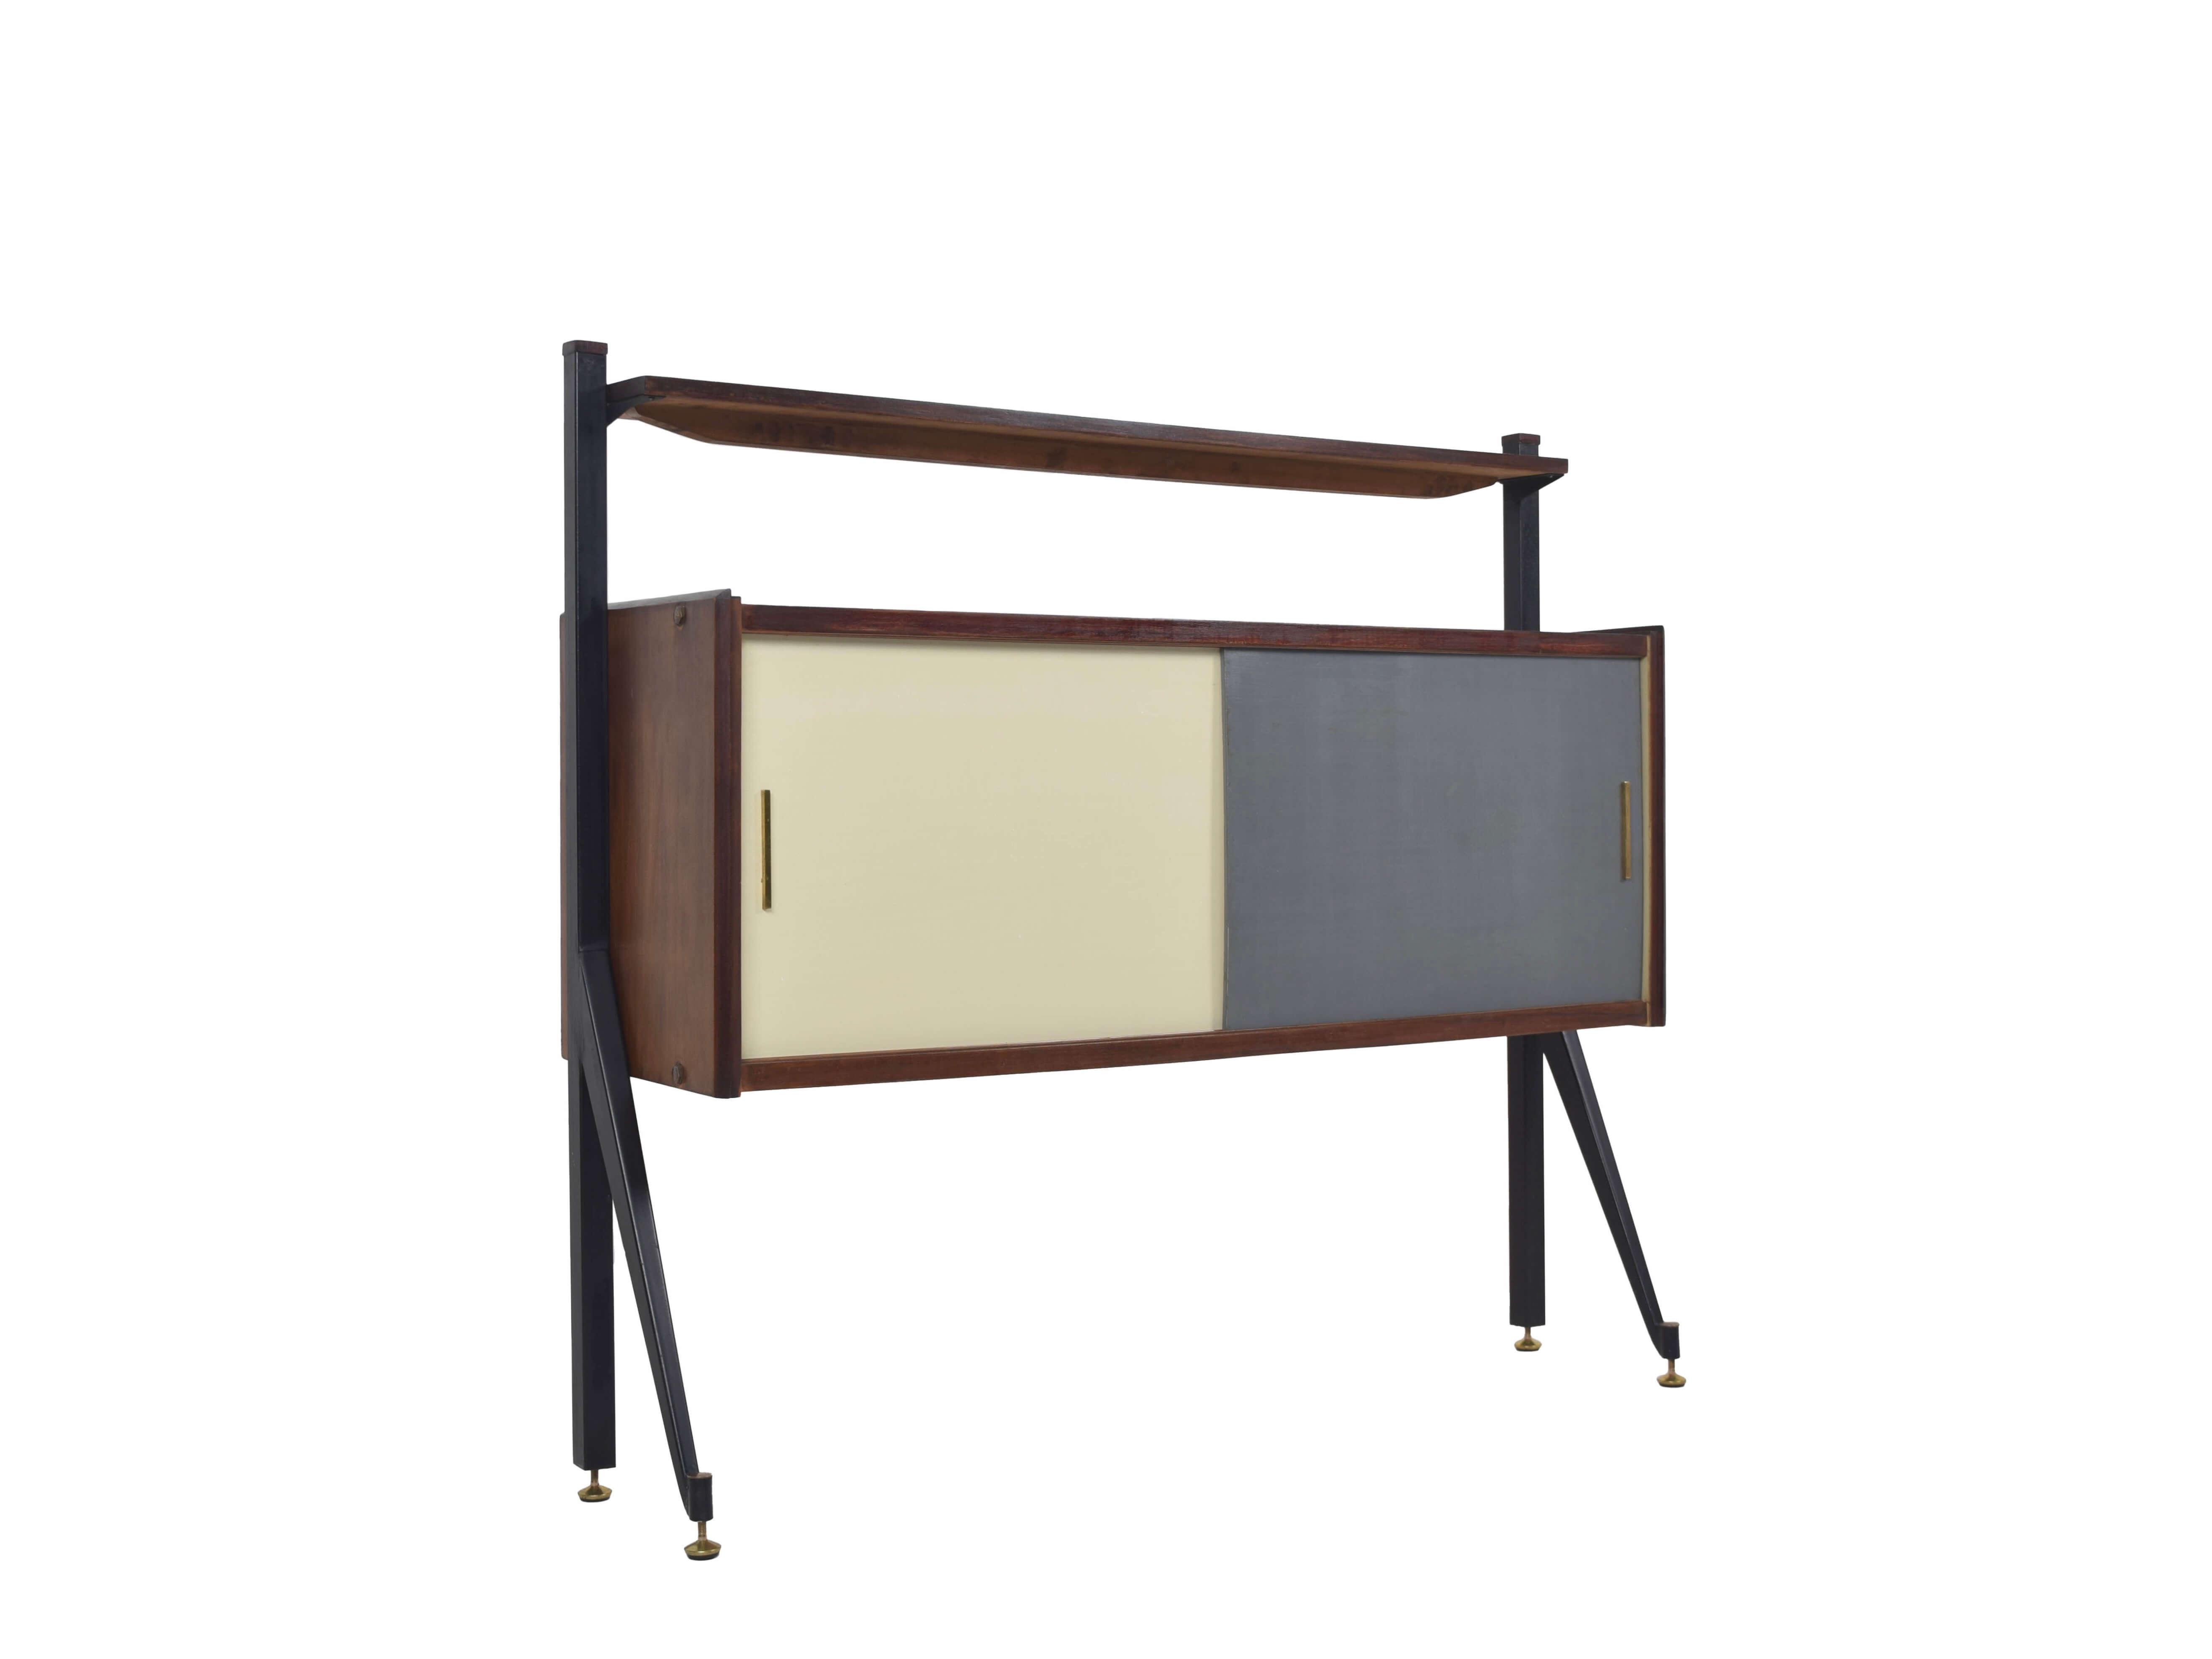 Italian Modern Cabinet with Colored Sliding Doors, Italy 1970s